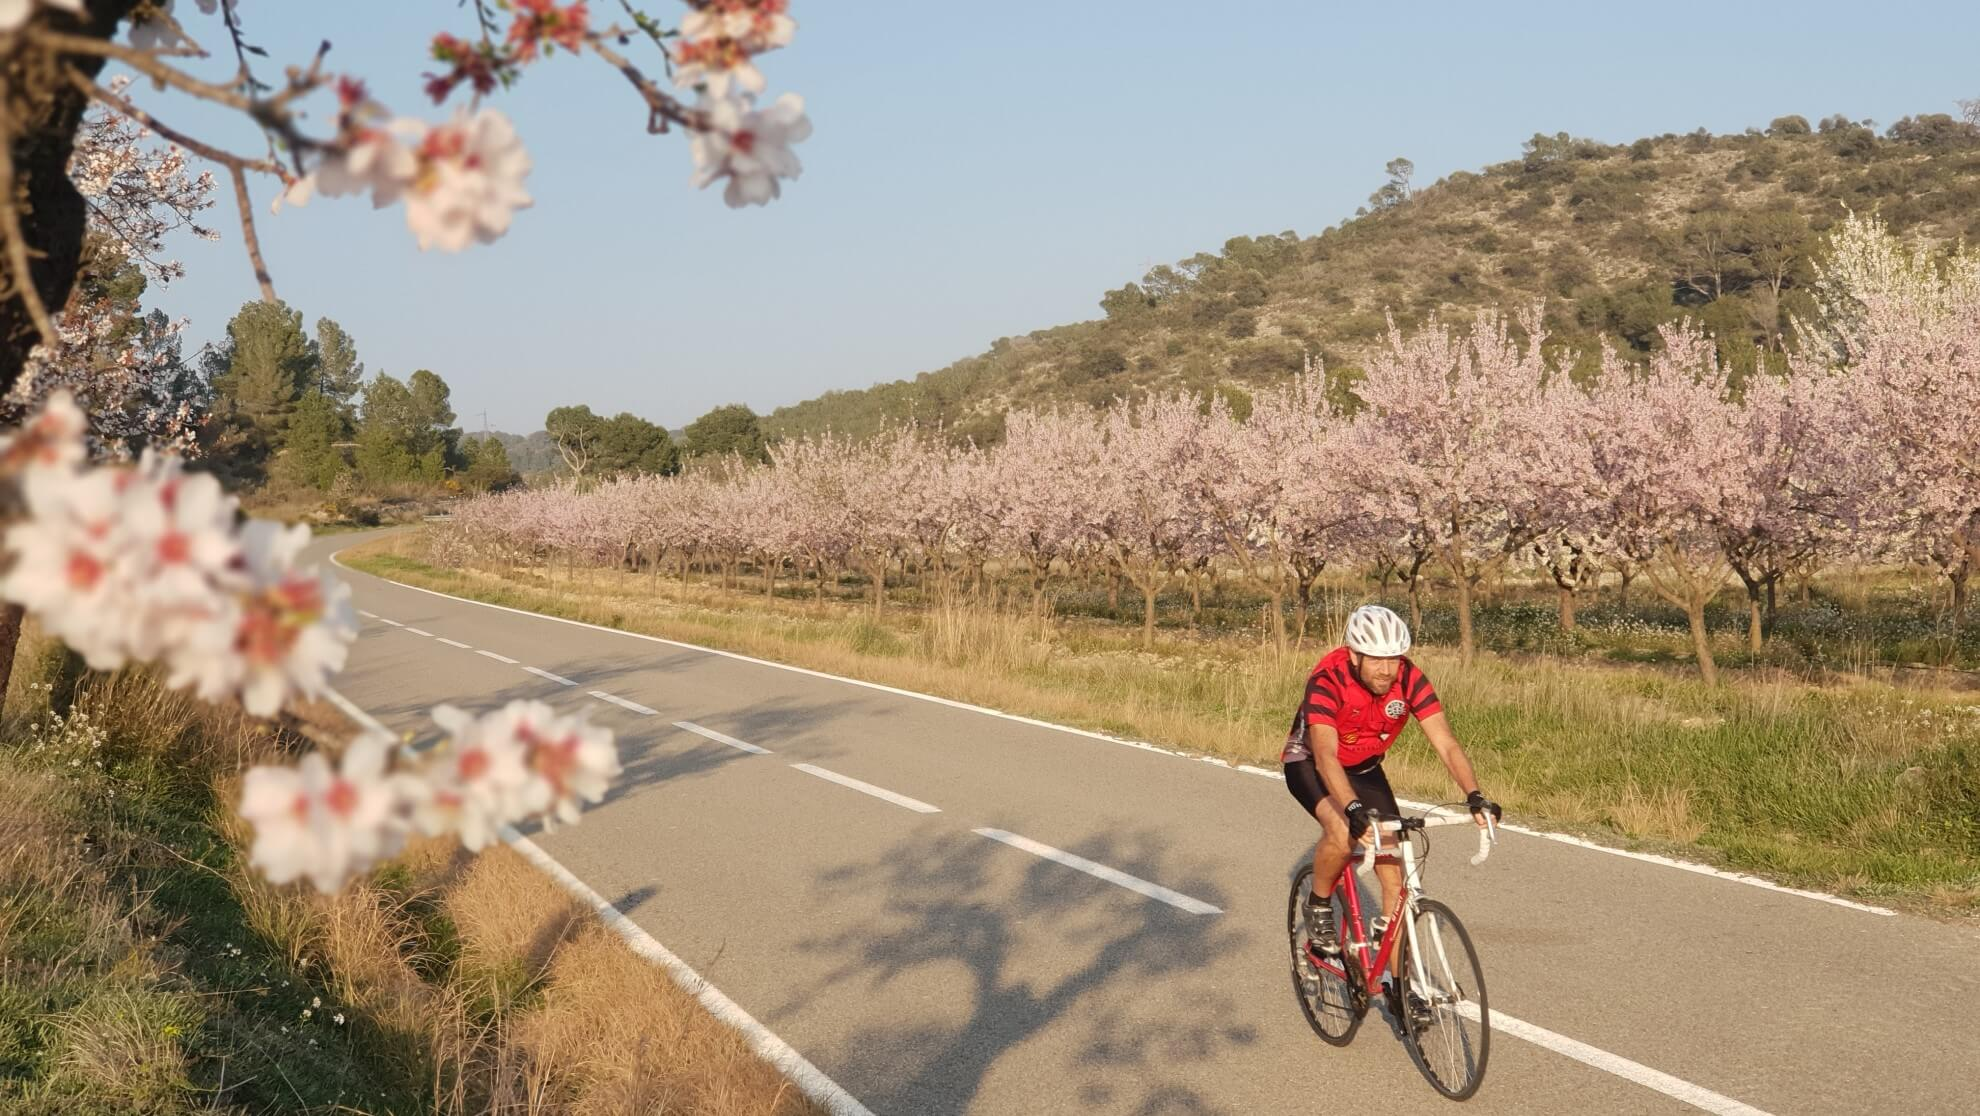 Bike through the blooming almond trees